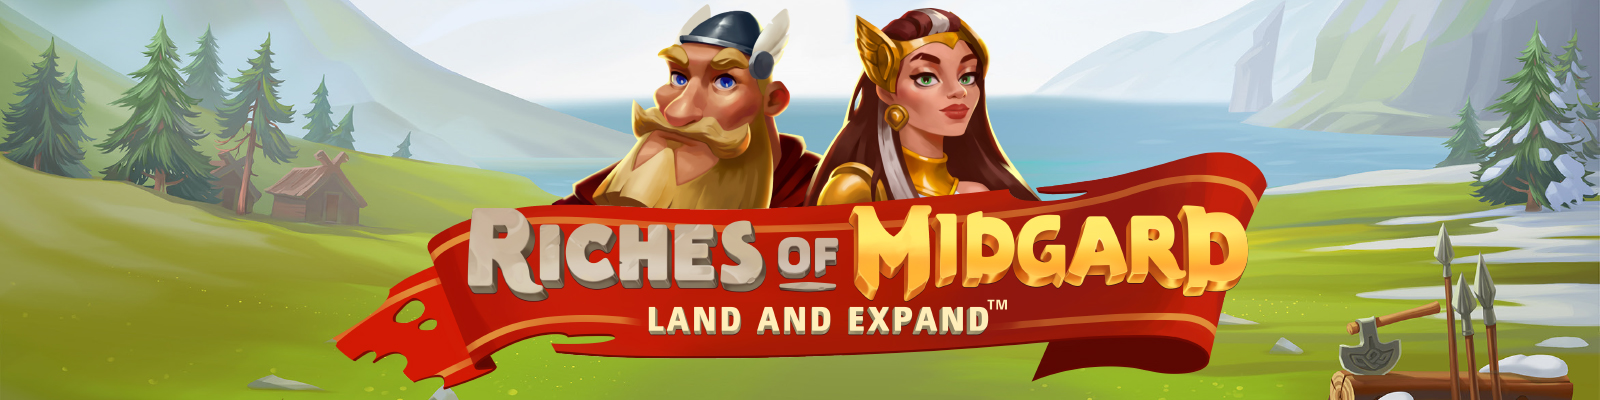 Riches of Midgard: Land and Expand from NetEnt